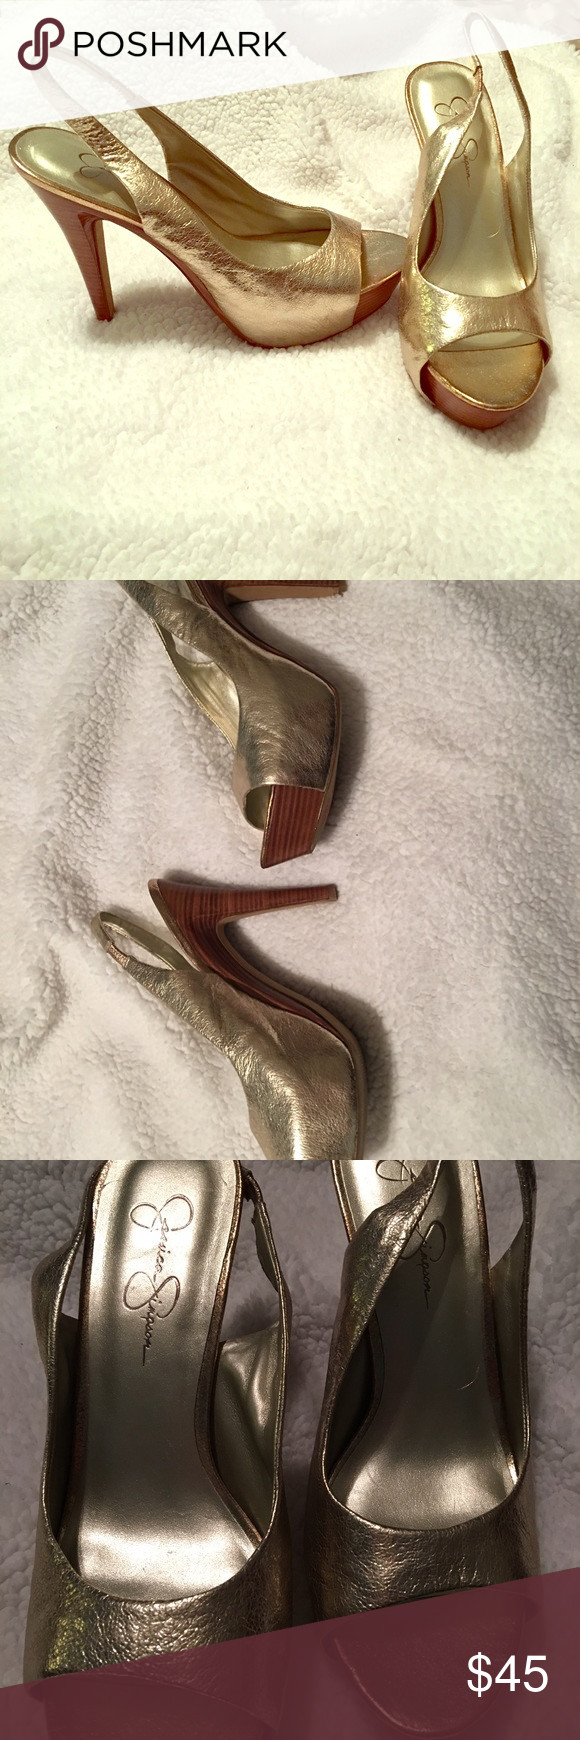 Jessica Simpson shoes Size 10 gold in great shape Jessica Simpson Shoes Heels